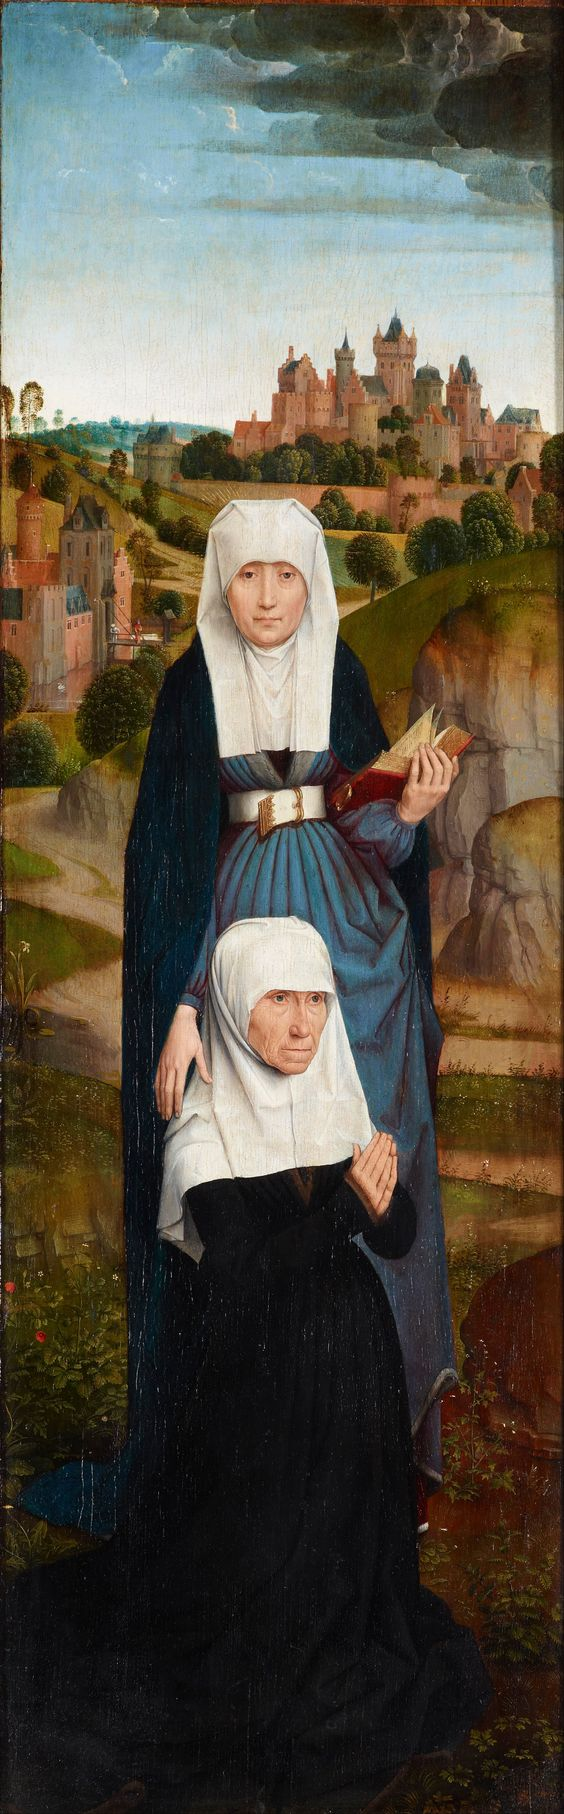 Hans Memling, Old Woman at Prayer with St. Anne